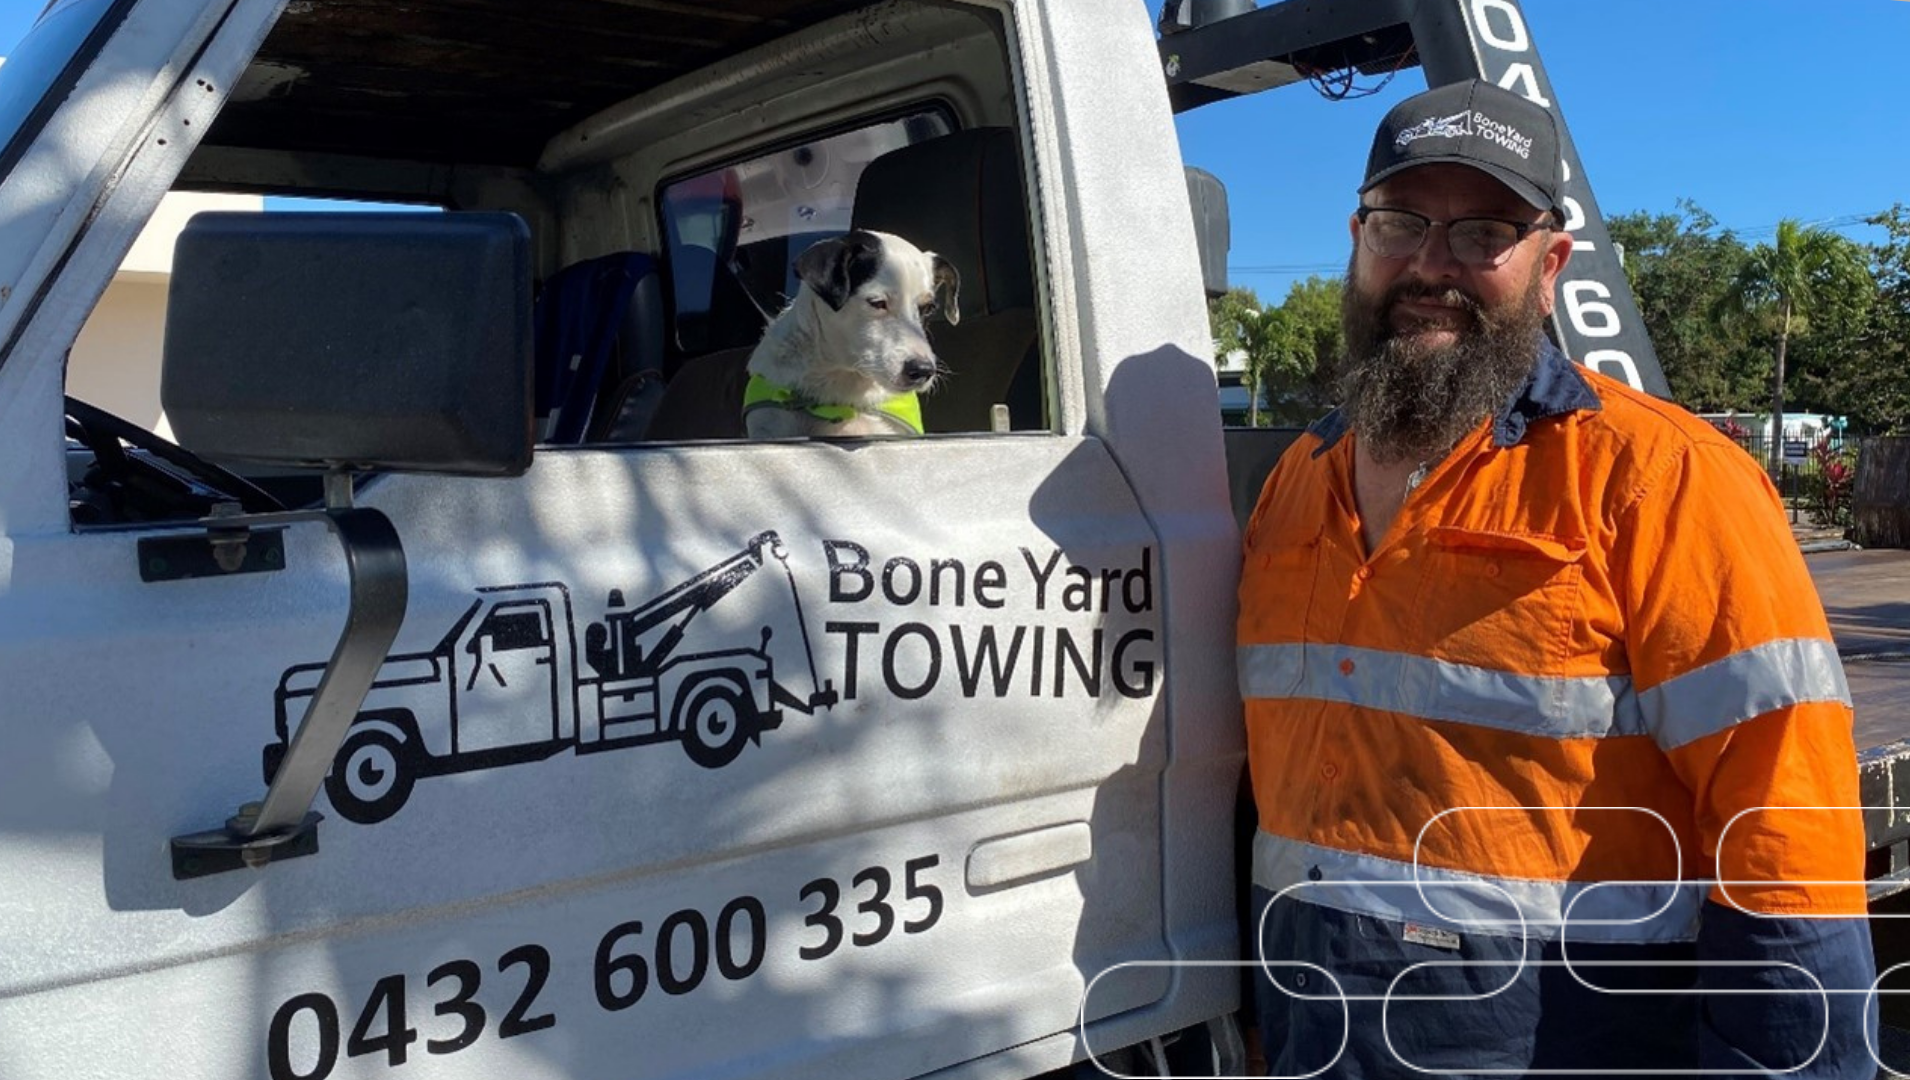 Scott standing in his hi-vis work uniform standing next to the side door of his tow truck, with his company label showing, and his support dog buddy sitting inside the cab of the truck